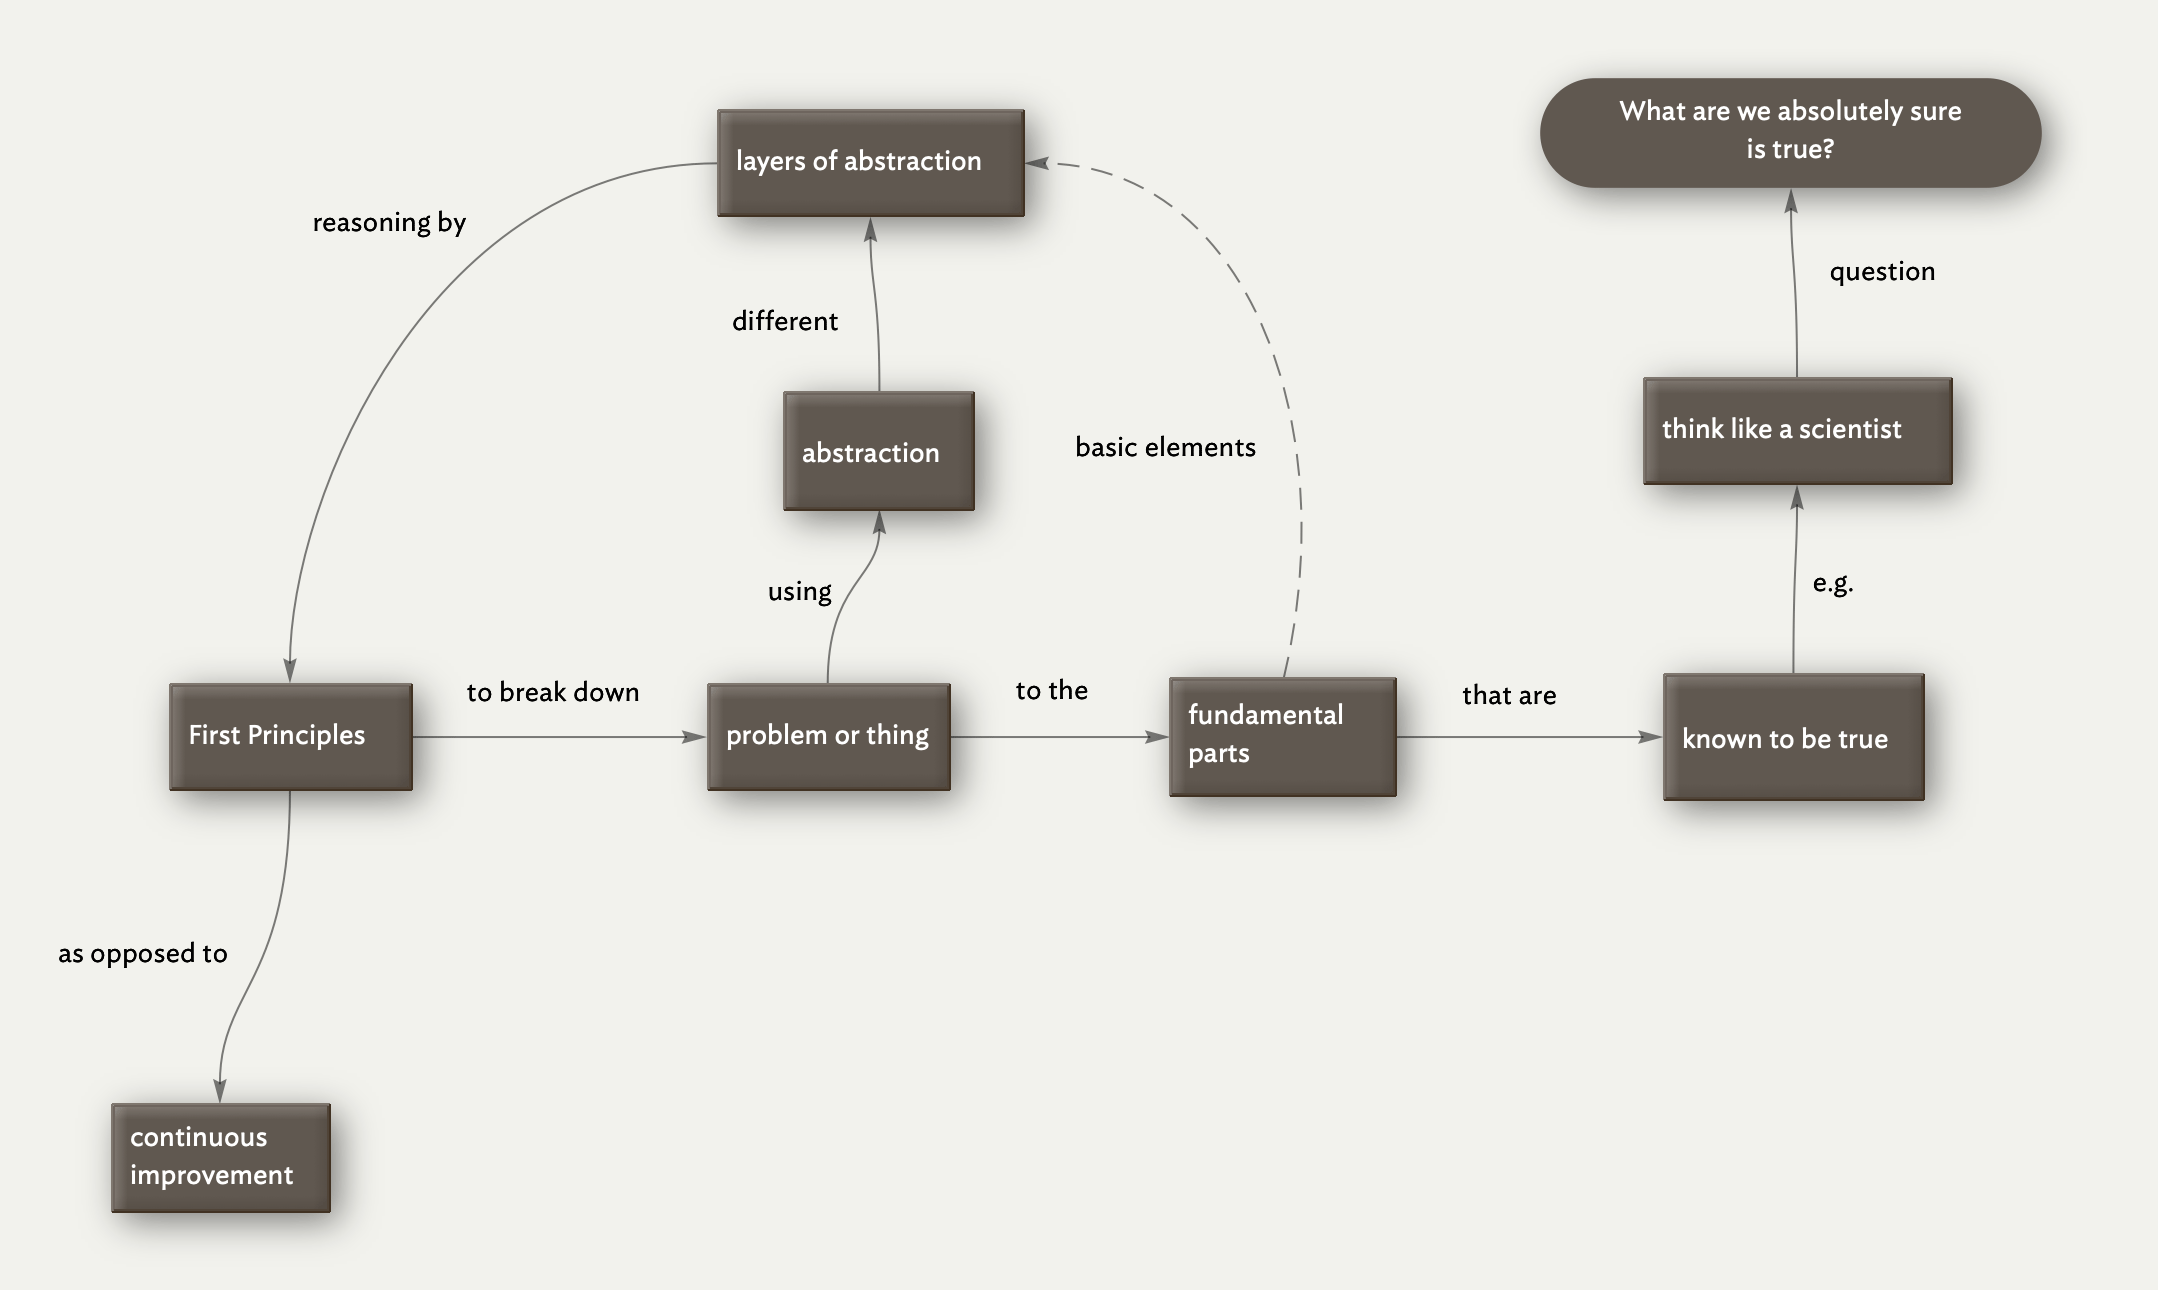 Visualization of the First Principles concept.